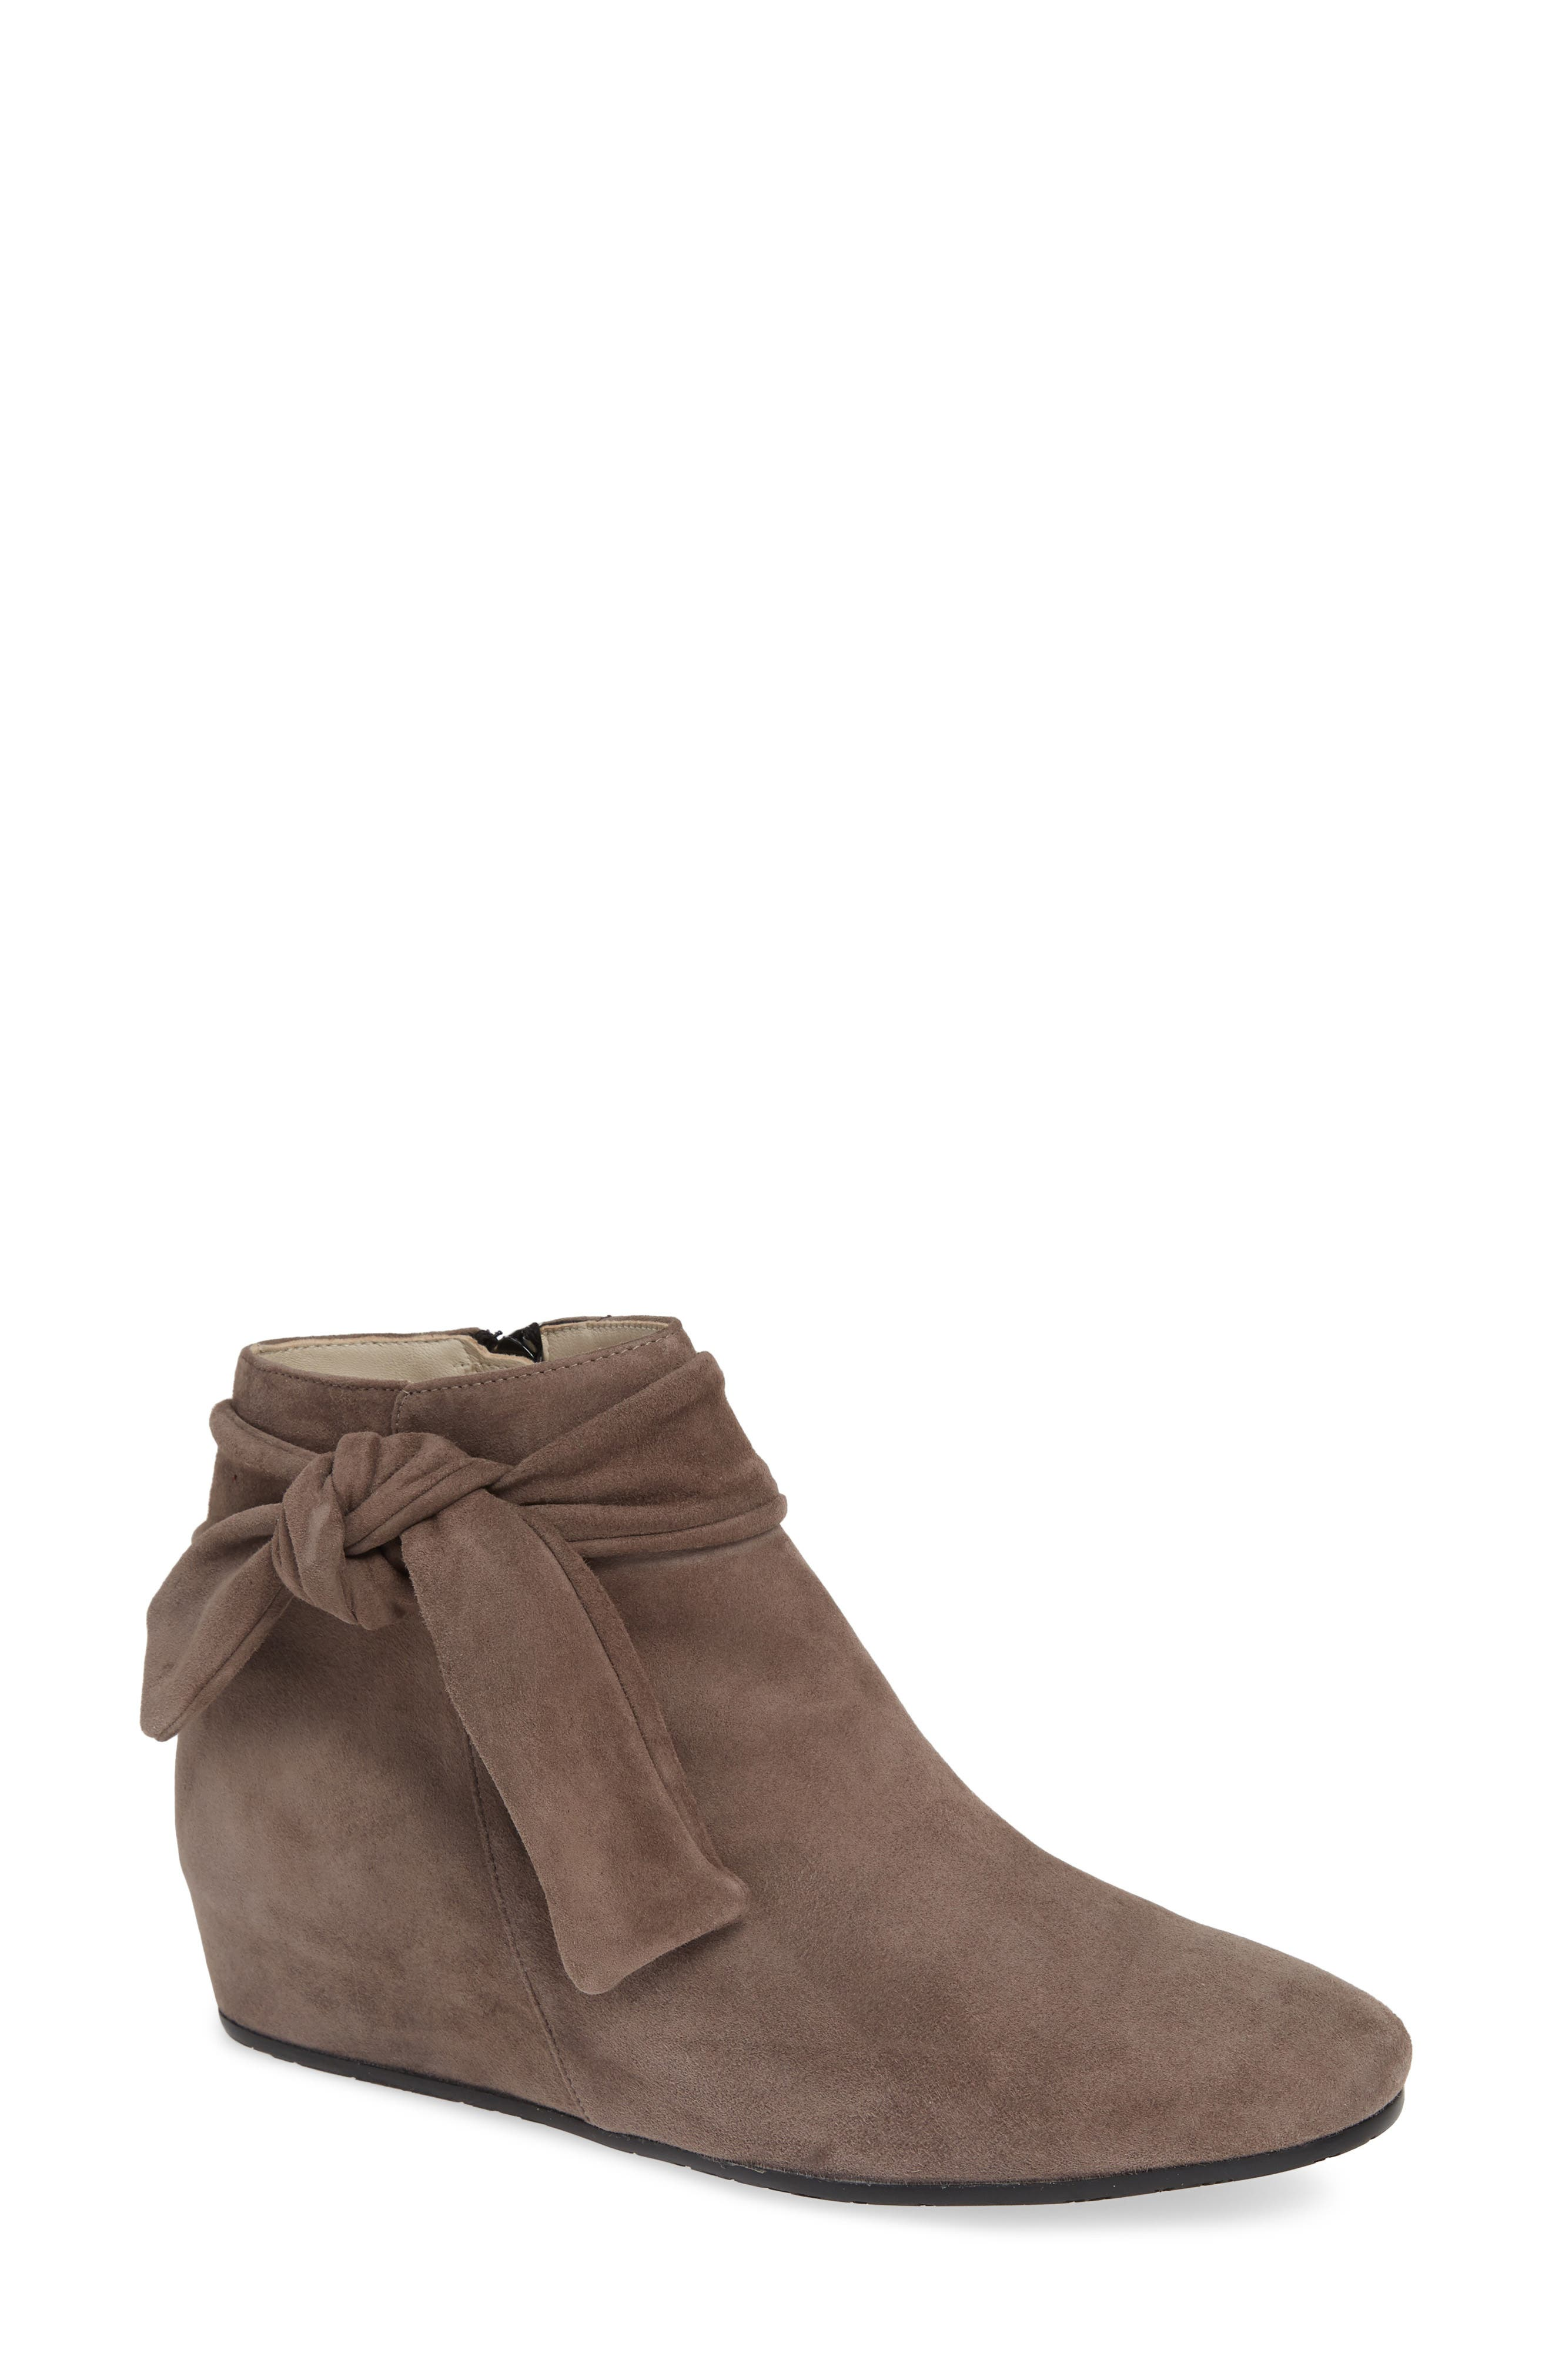 AMALFI BY RANGONI Vicenza Bootie in Dark Taupe Suede